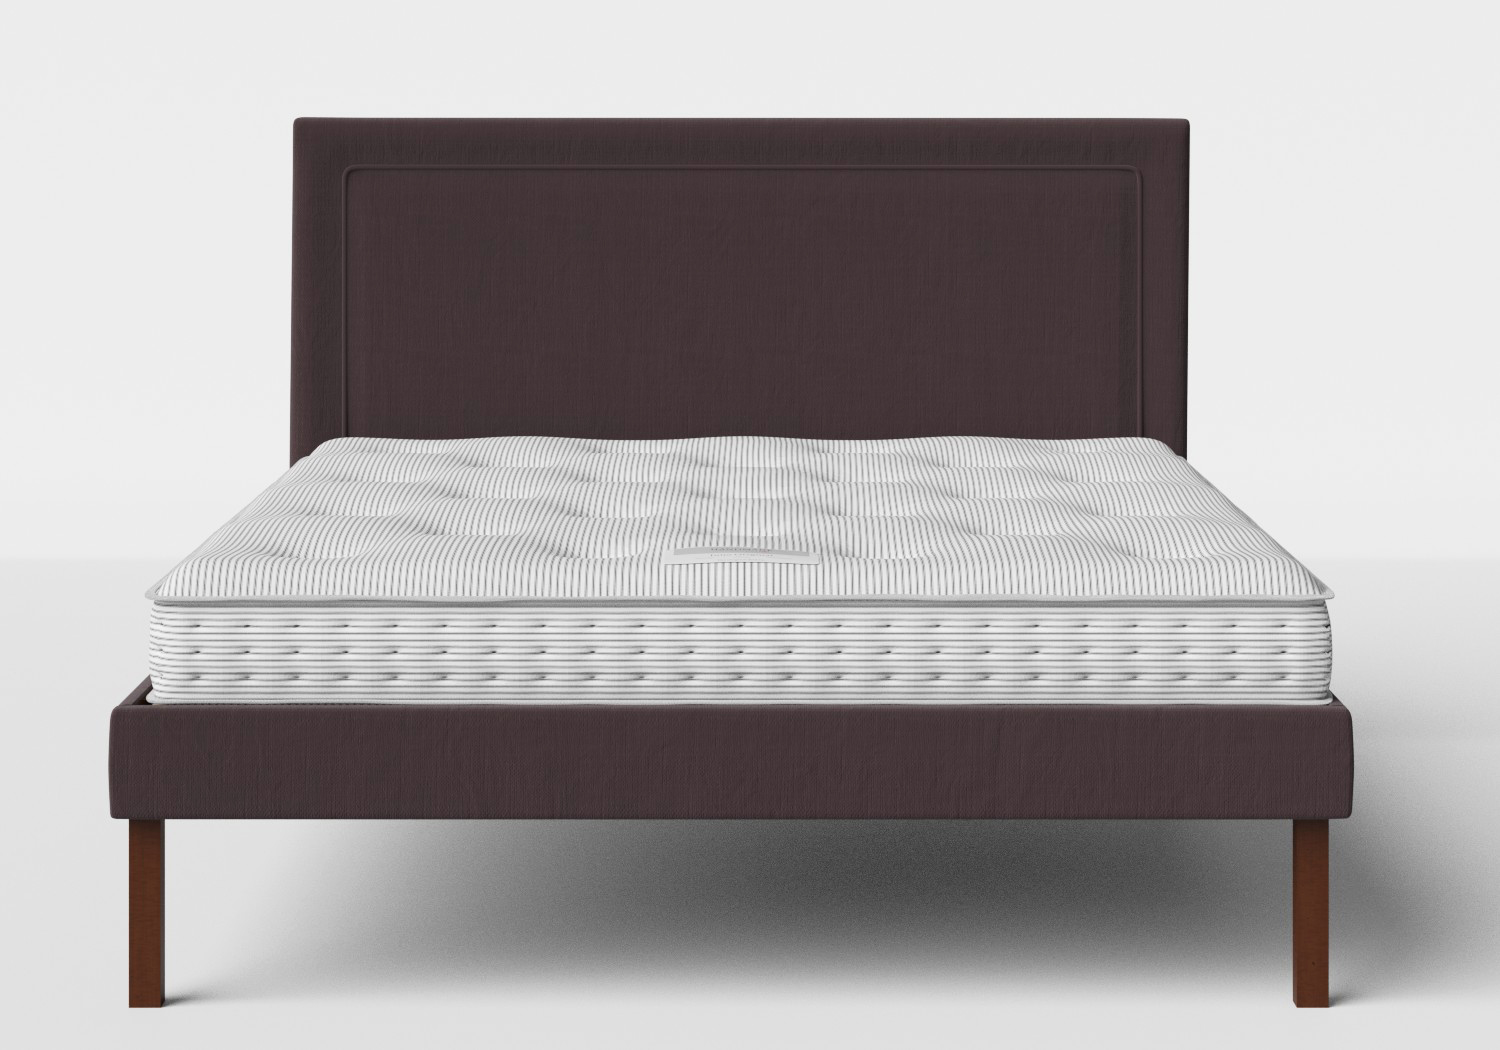 Misaki Upholstered Bed in Aubergine fabric shown with Juno 1 mattress